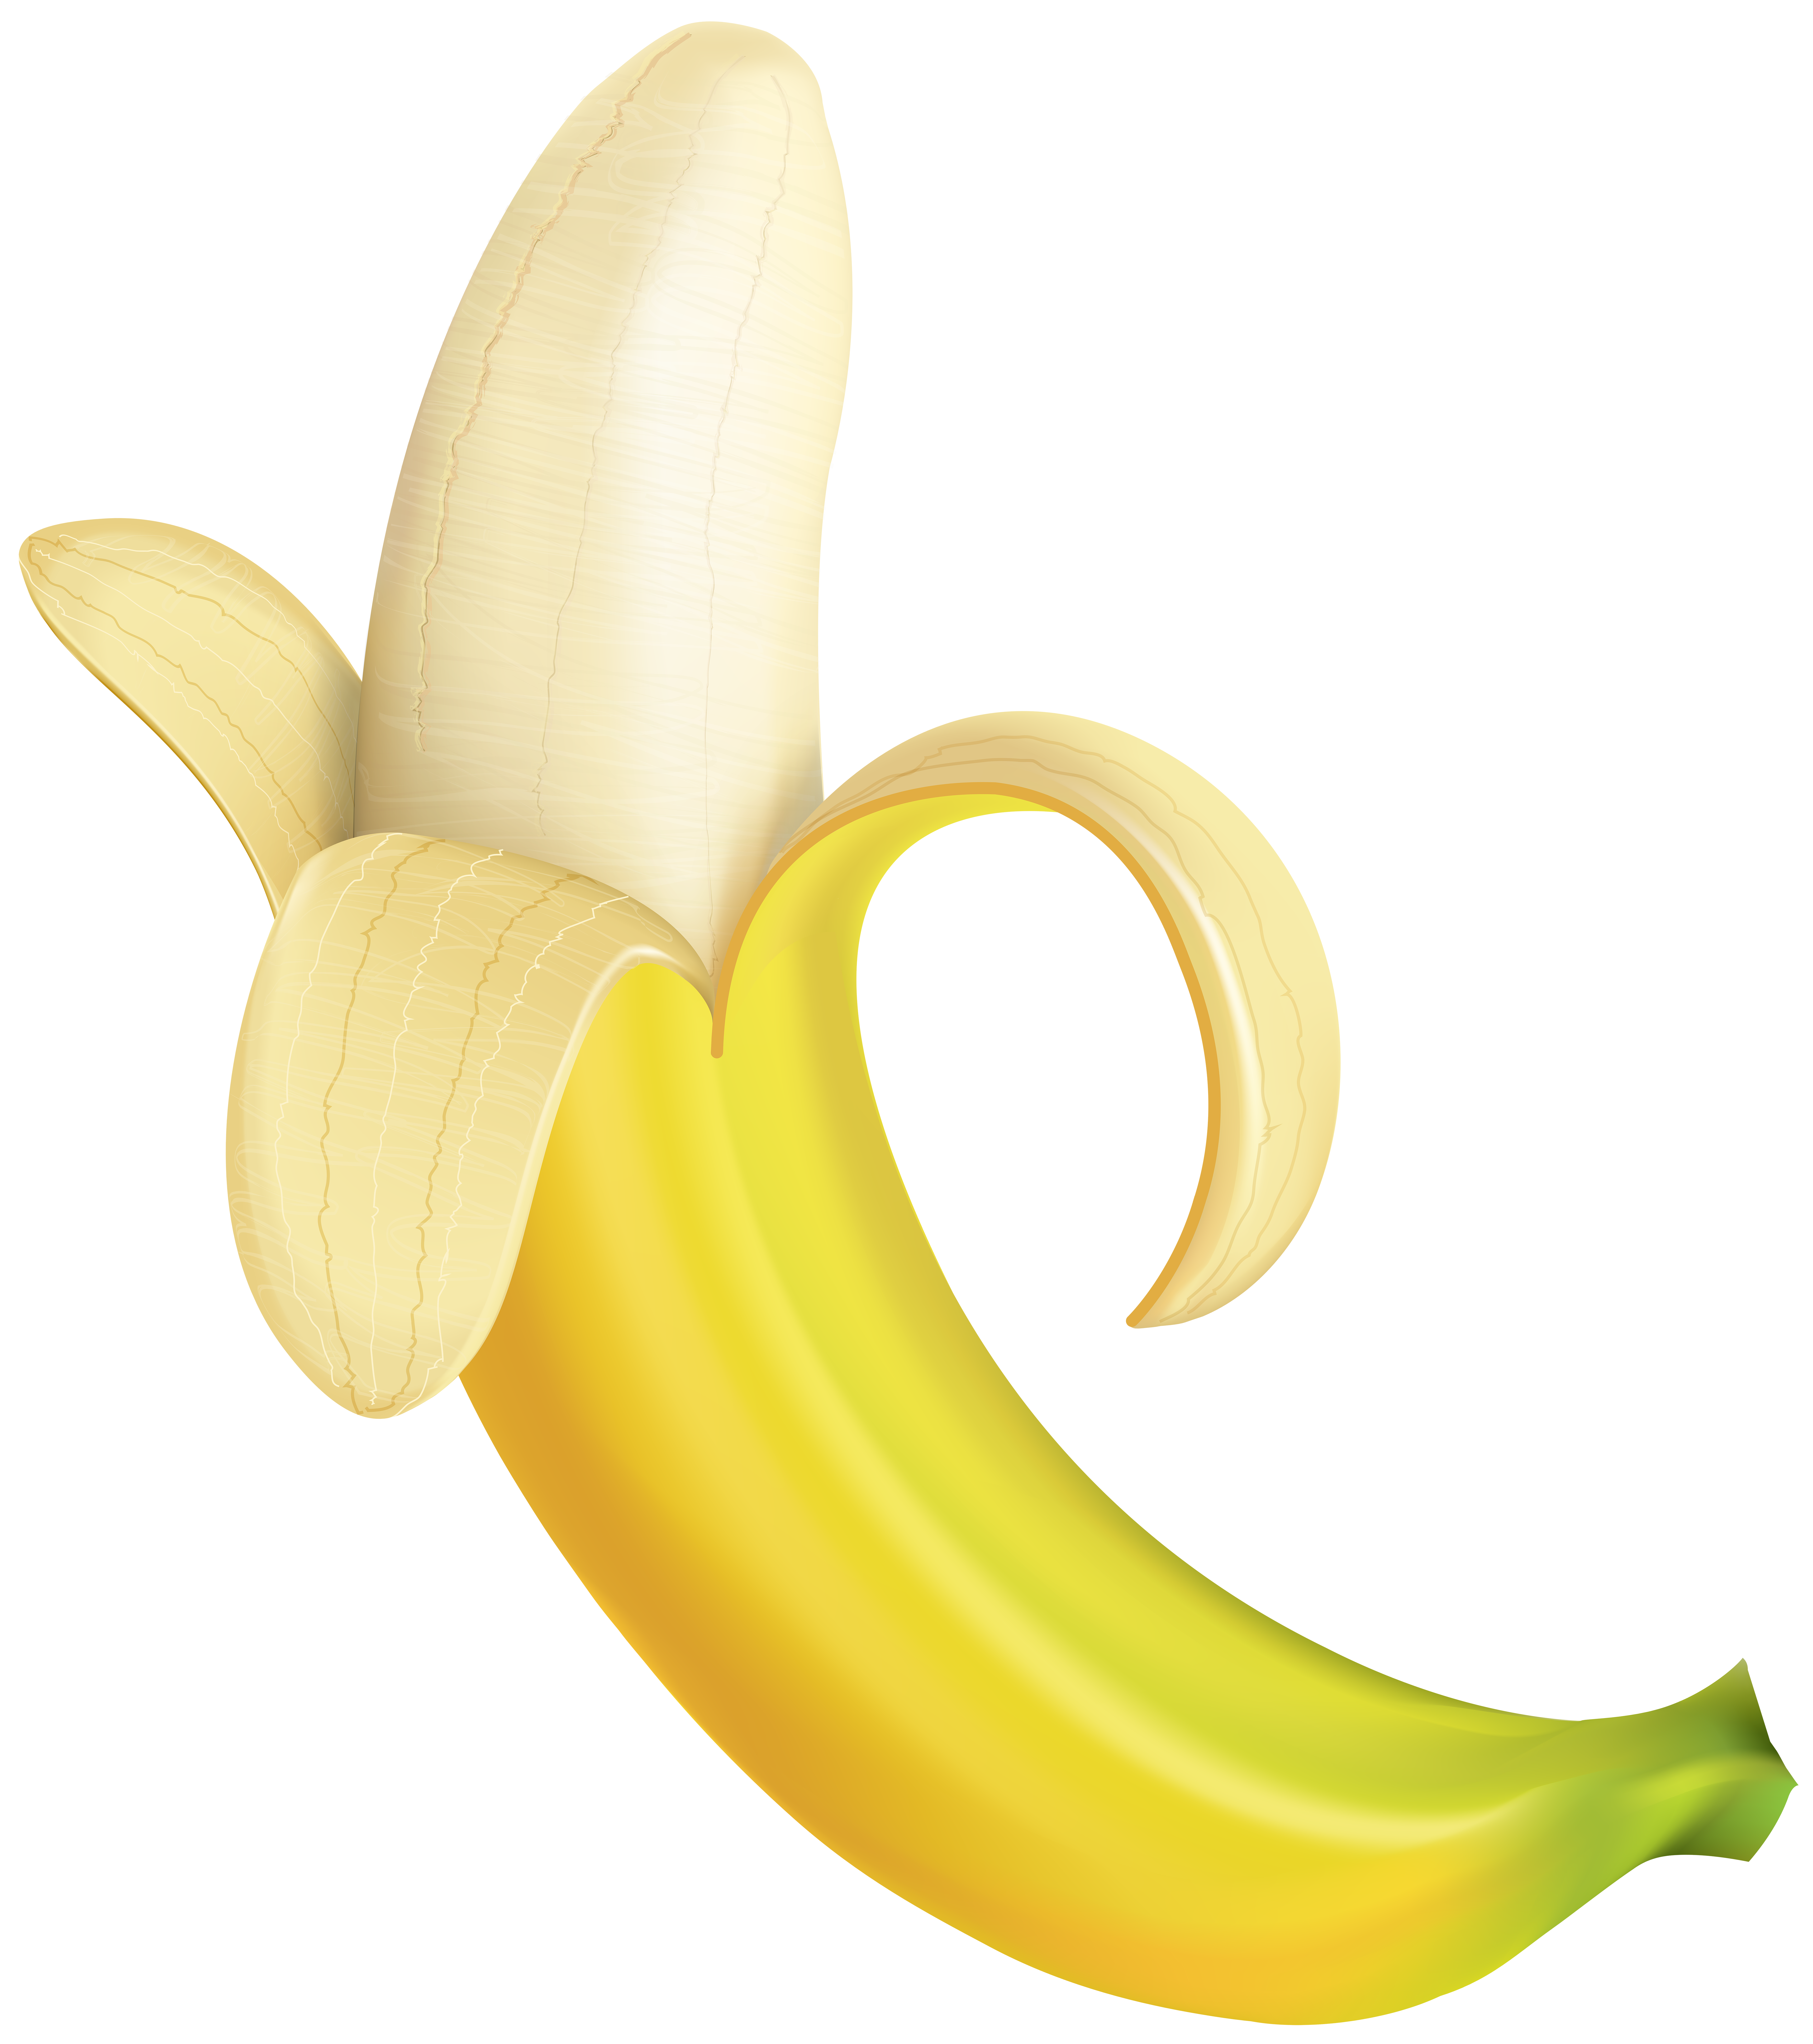 Peeled Banana Clipart Image Gallery Yopriceville High Quality Images And Transparent Png Free Clipart Banana Banana Picture Banana Painting